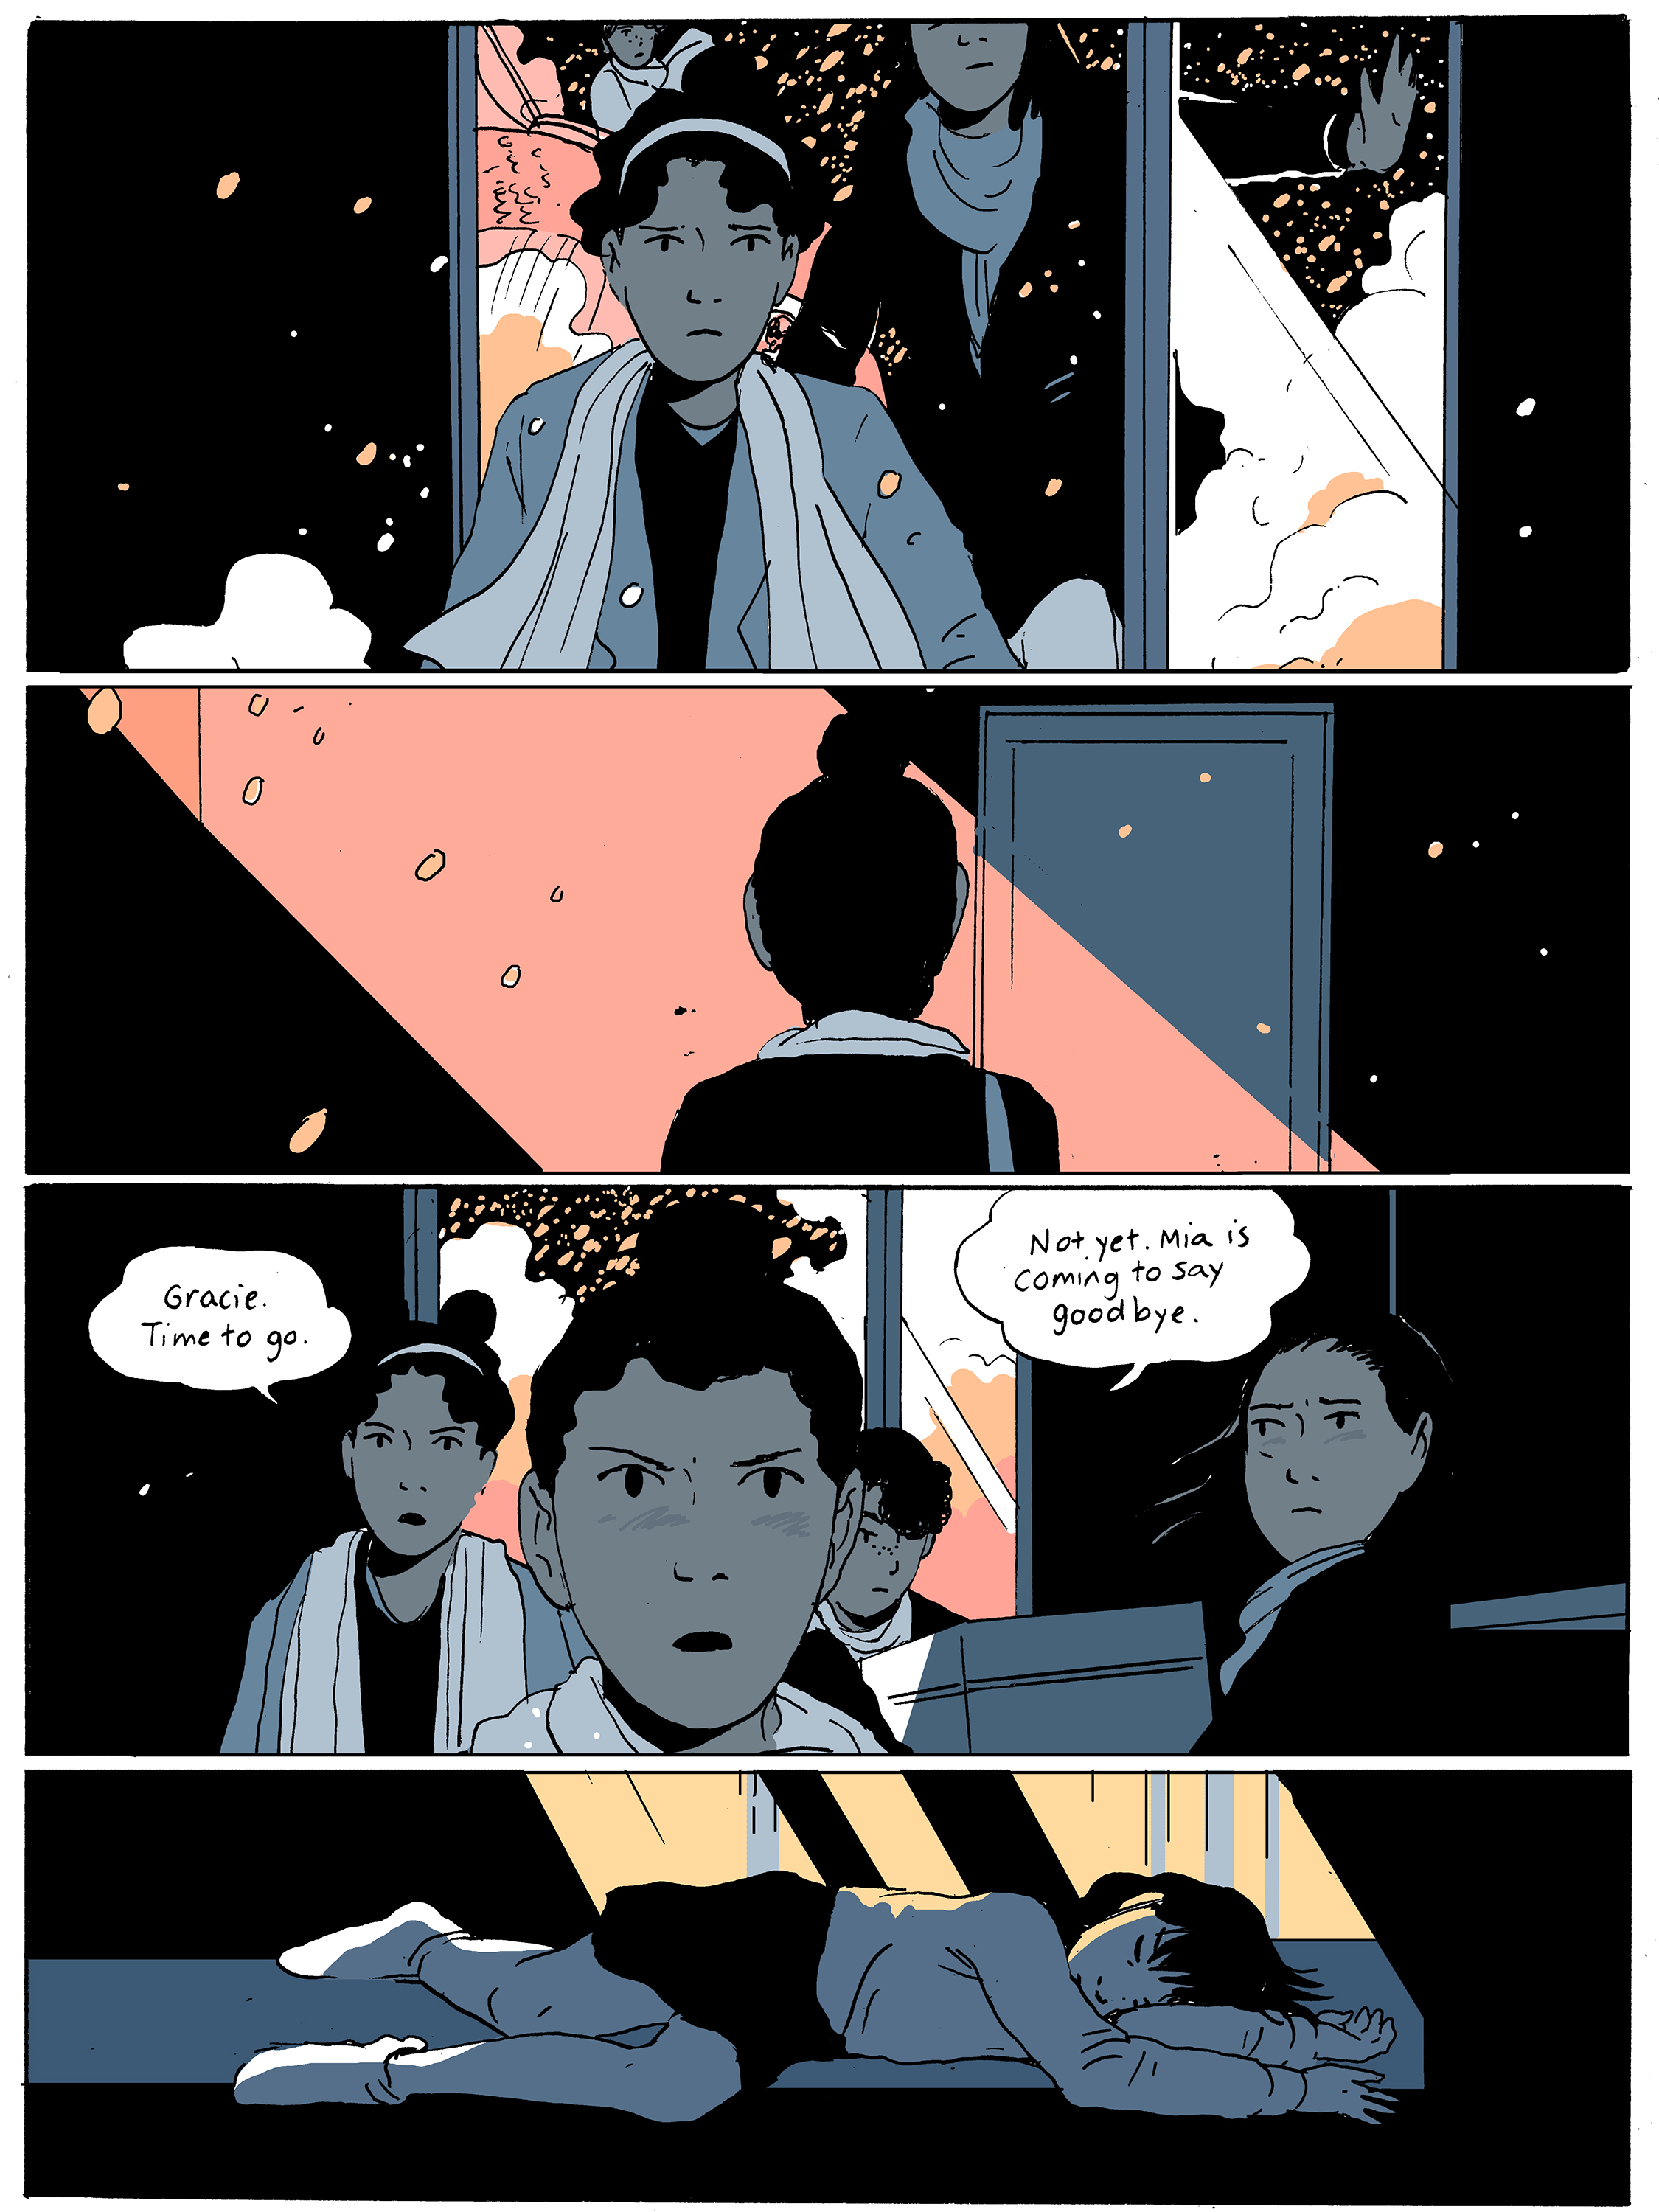 chapter12_page24.jpg